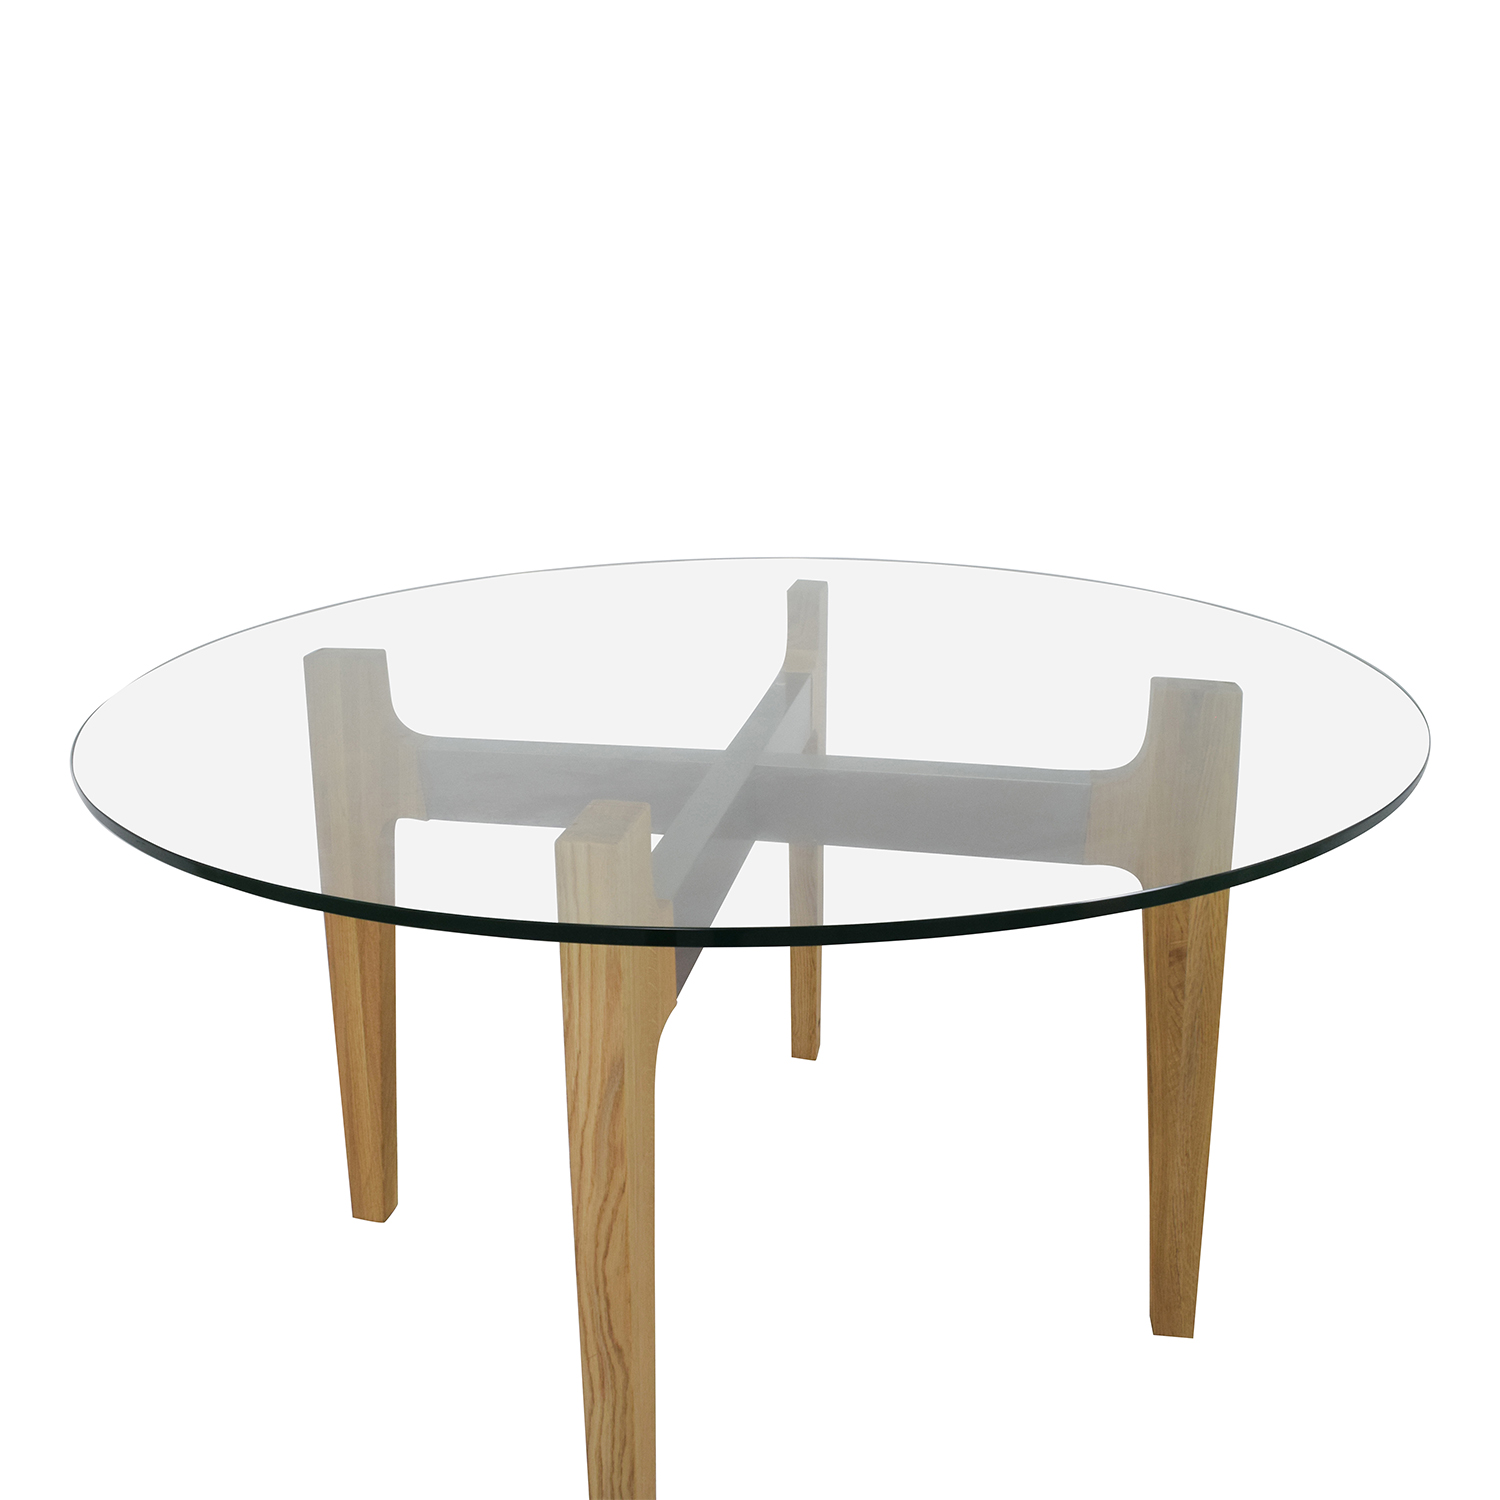 Cb2 Round Brace Dining Table Tables